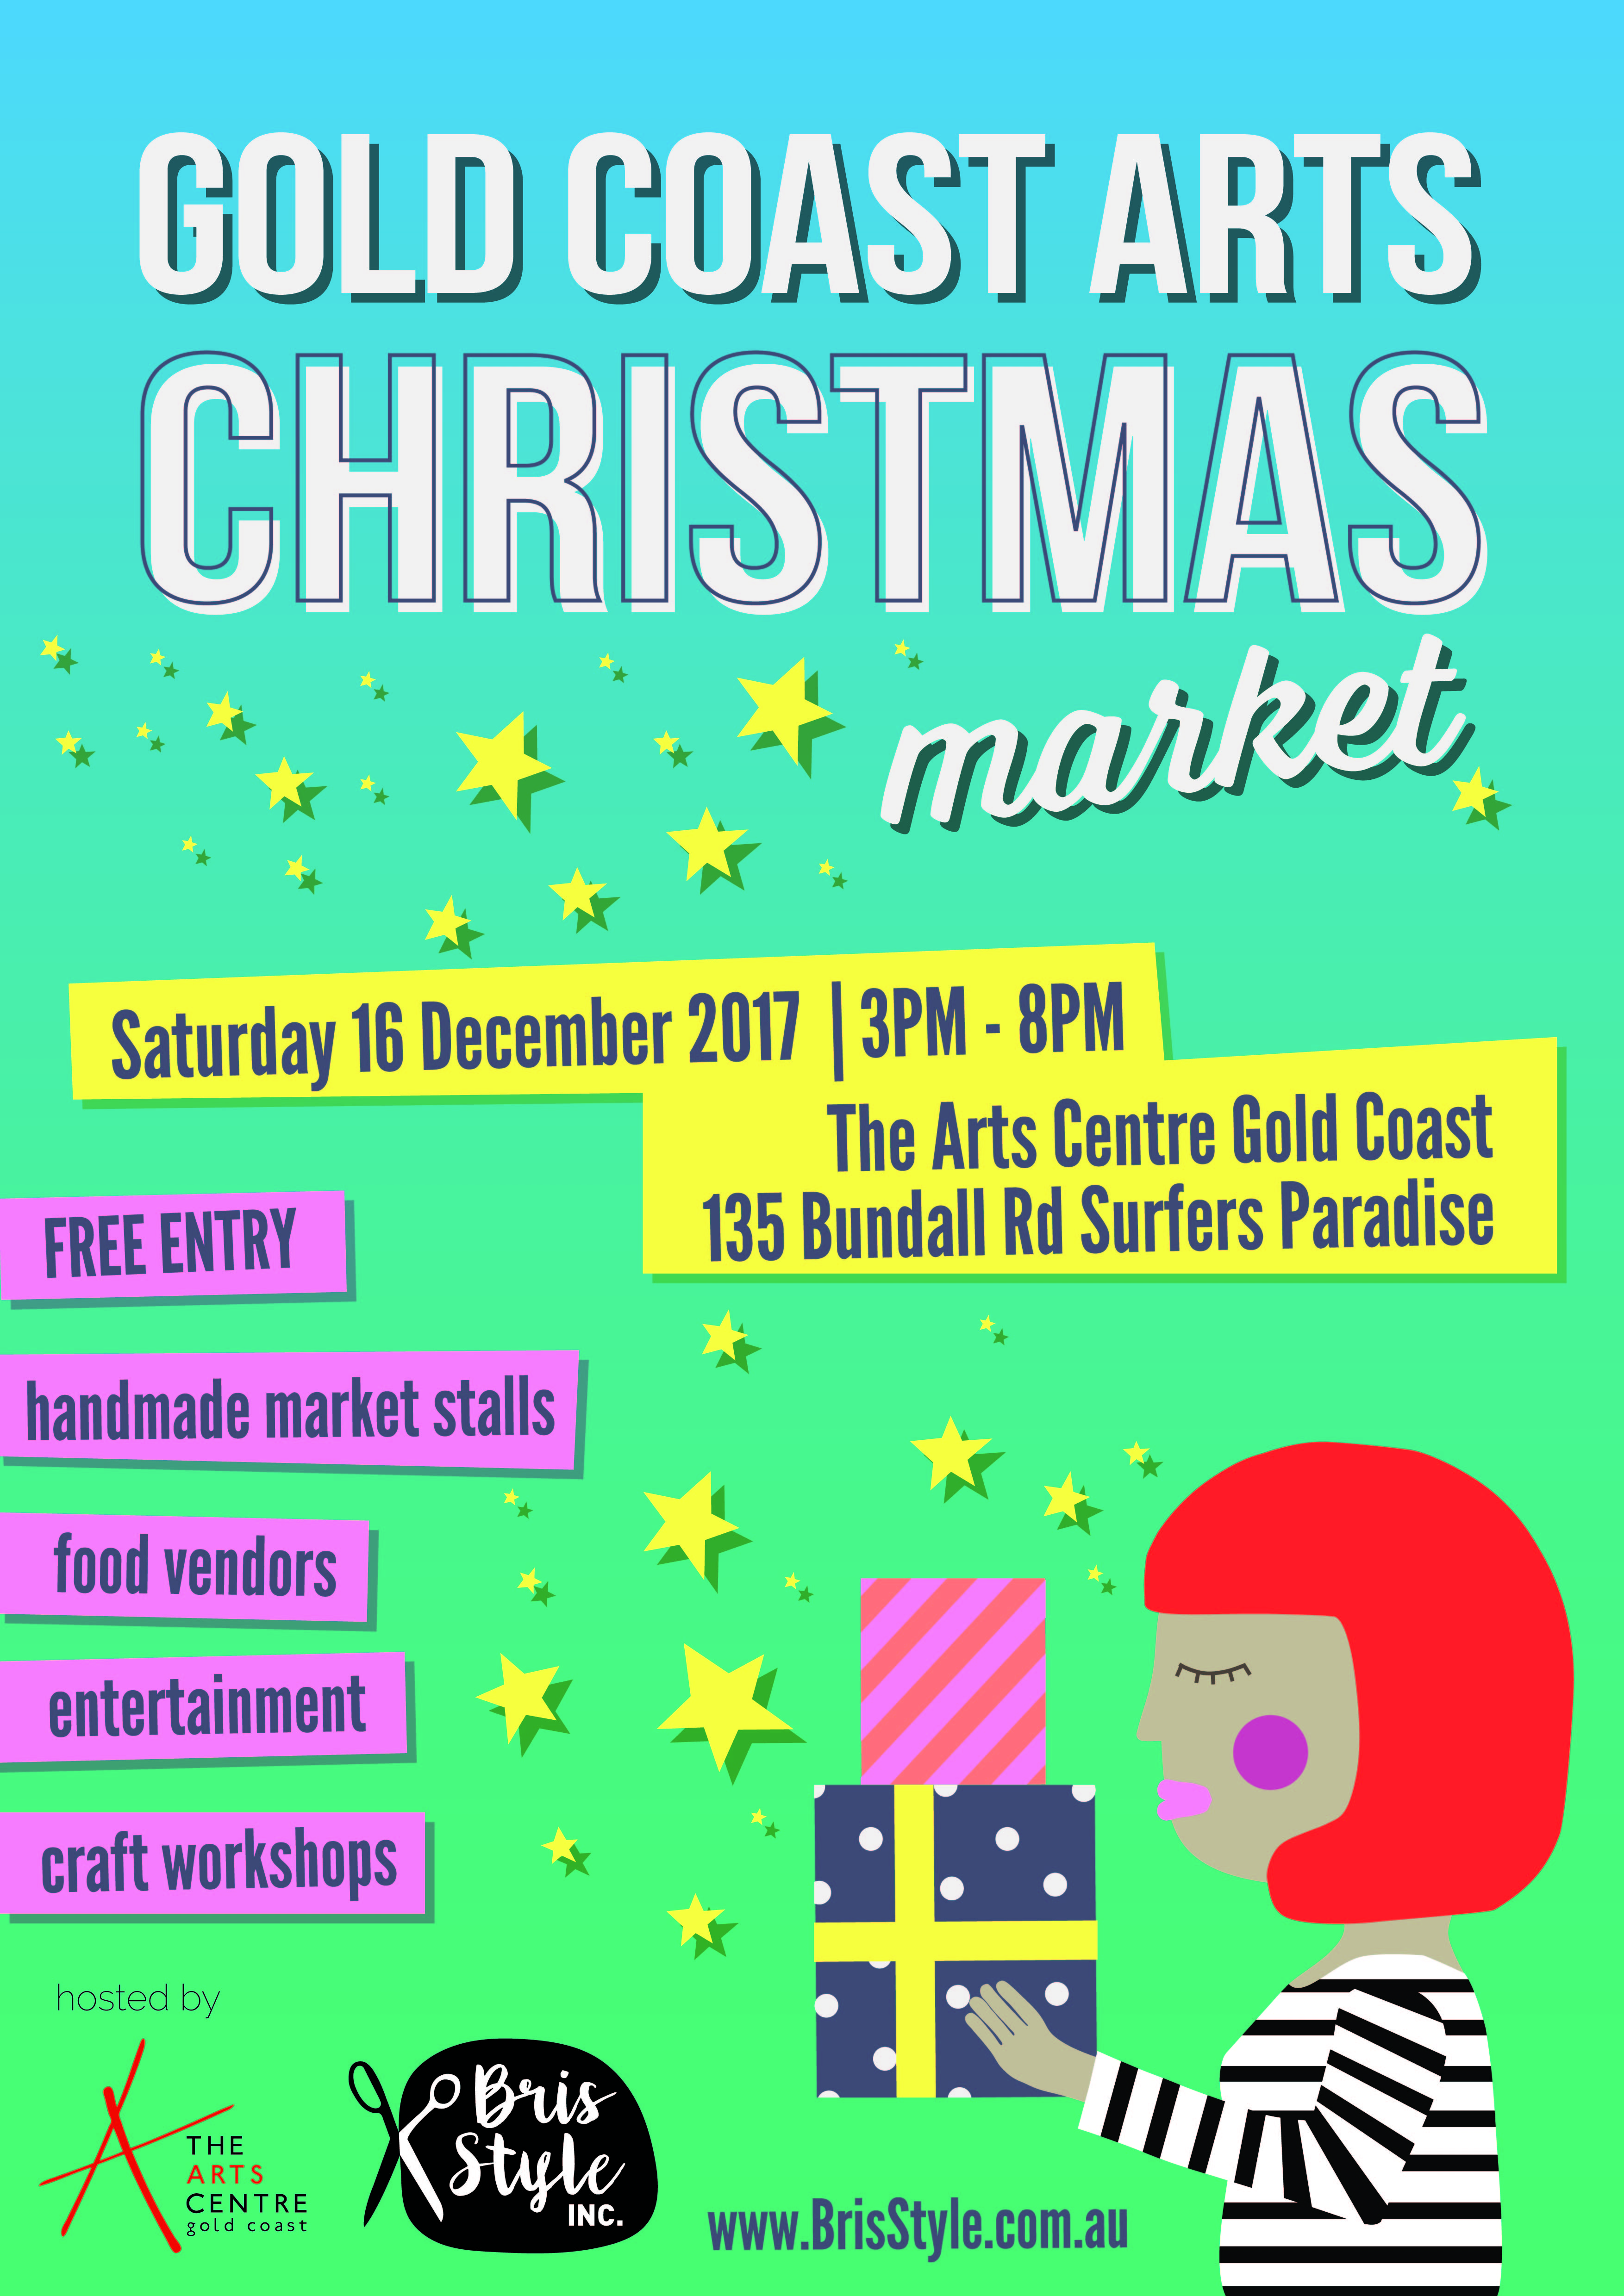 GC Arts Christmas Market Dec 16 Poster DRAFT 5 01